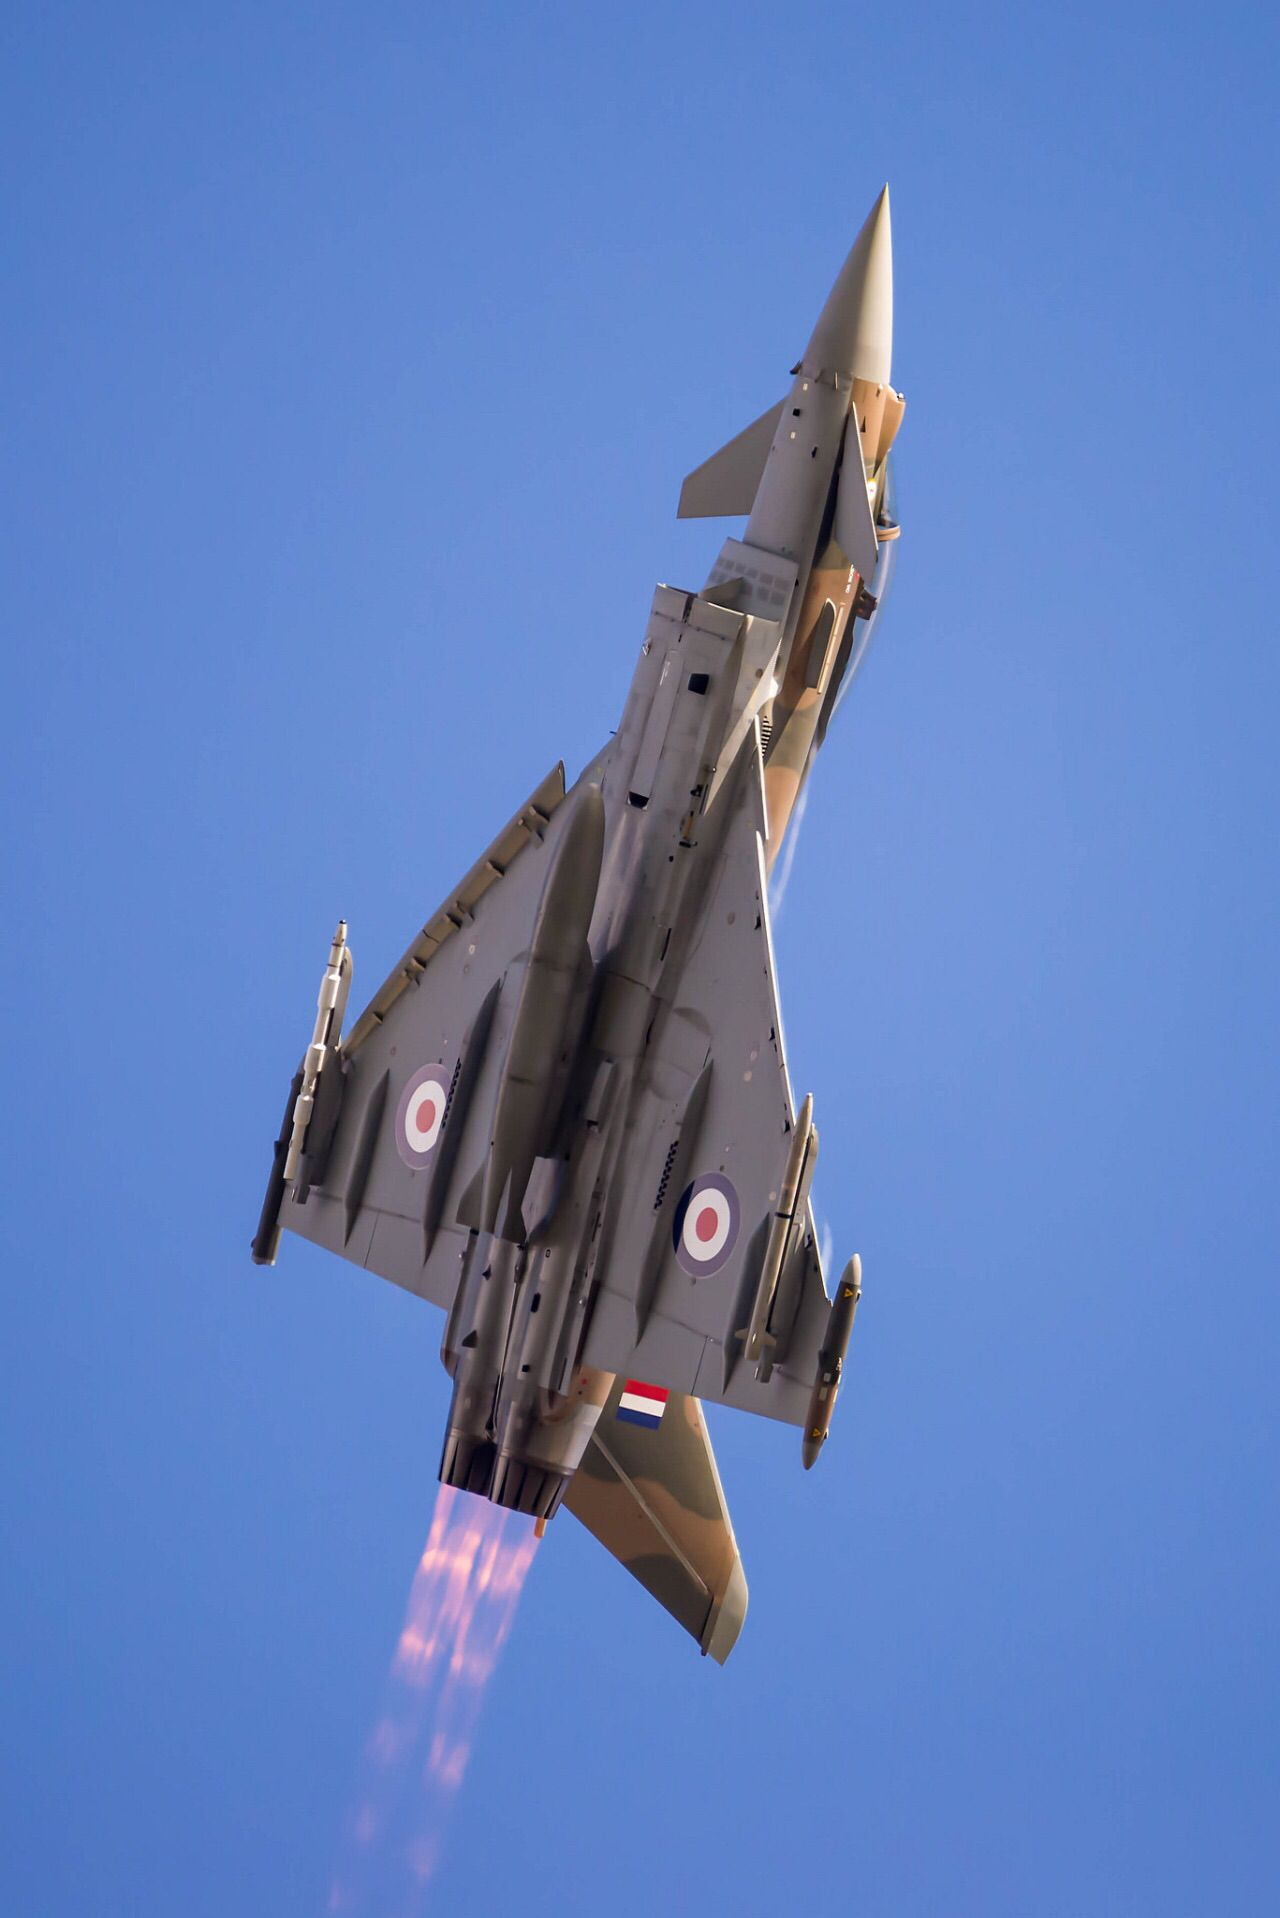 eurofighter typhoon royal air force fighter jets fighter jets